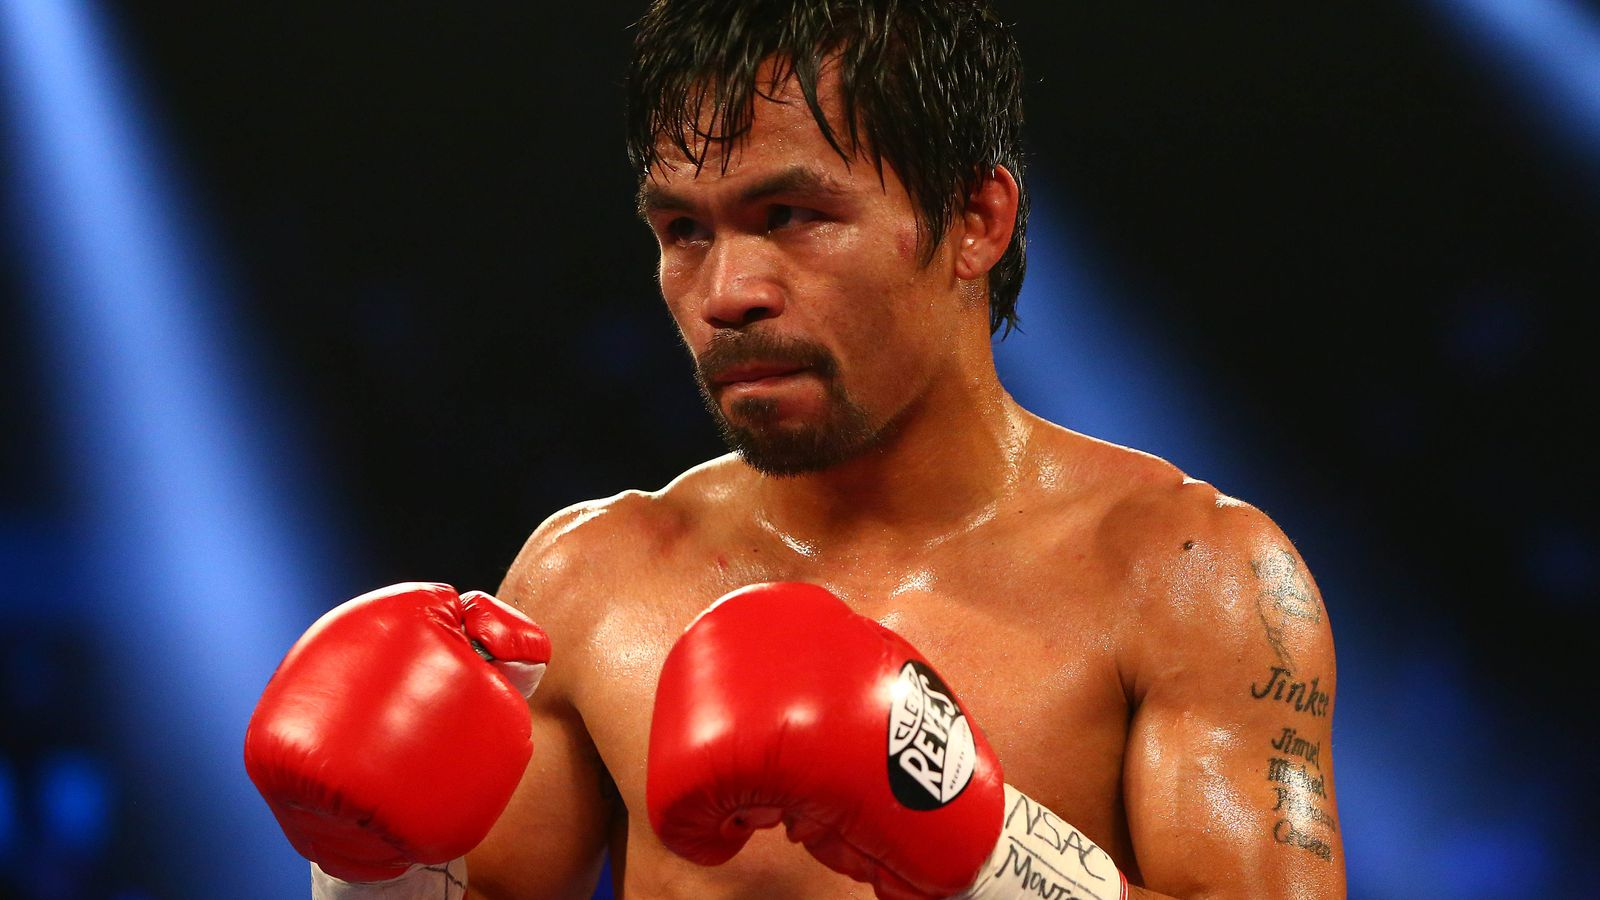 Mayweather pacquiao date in Australia